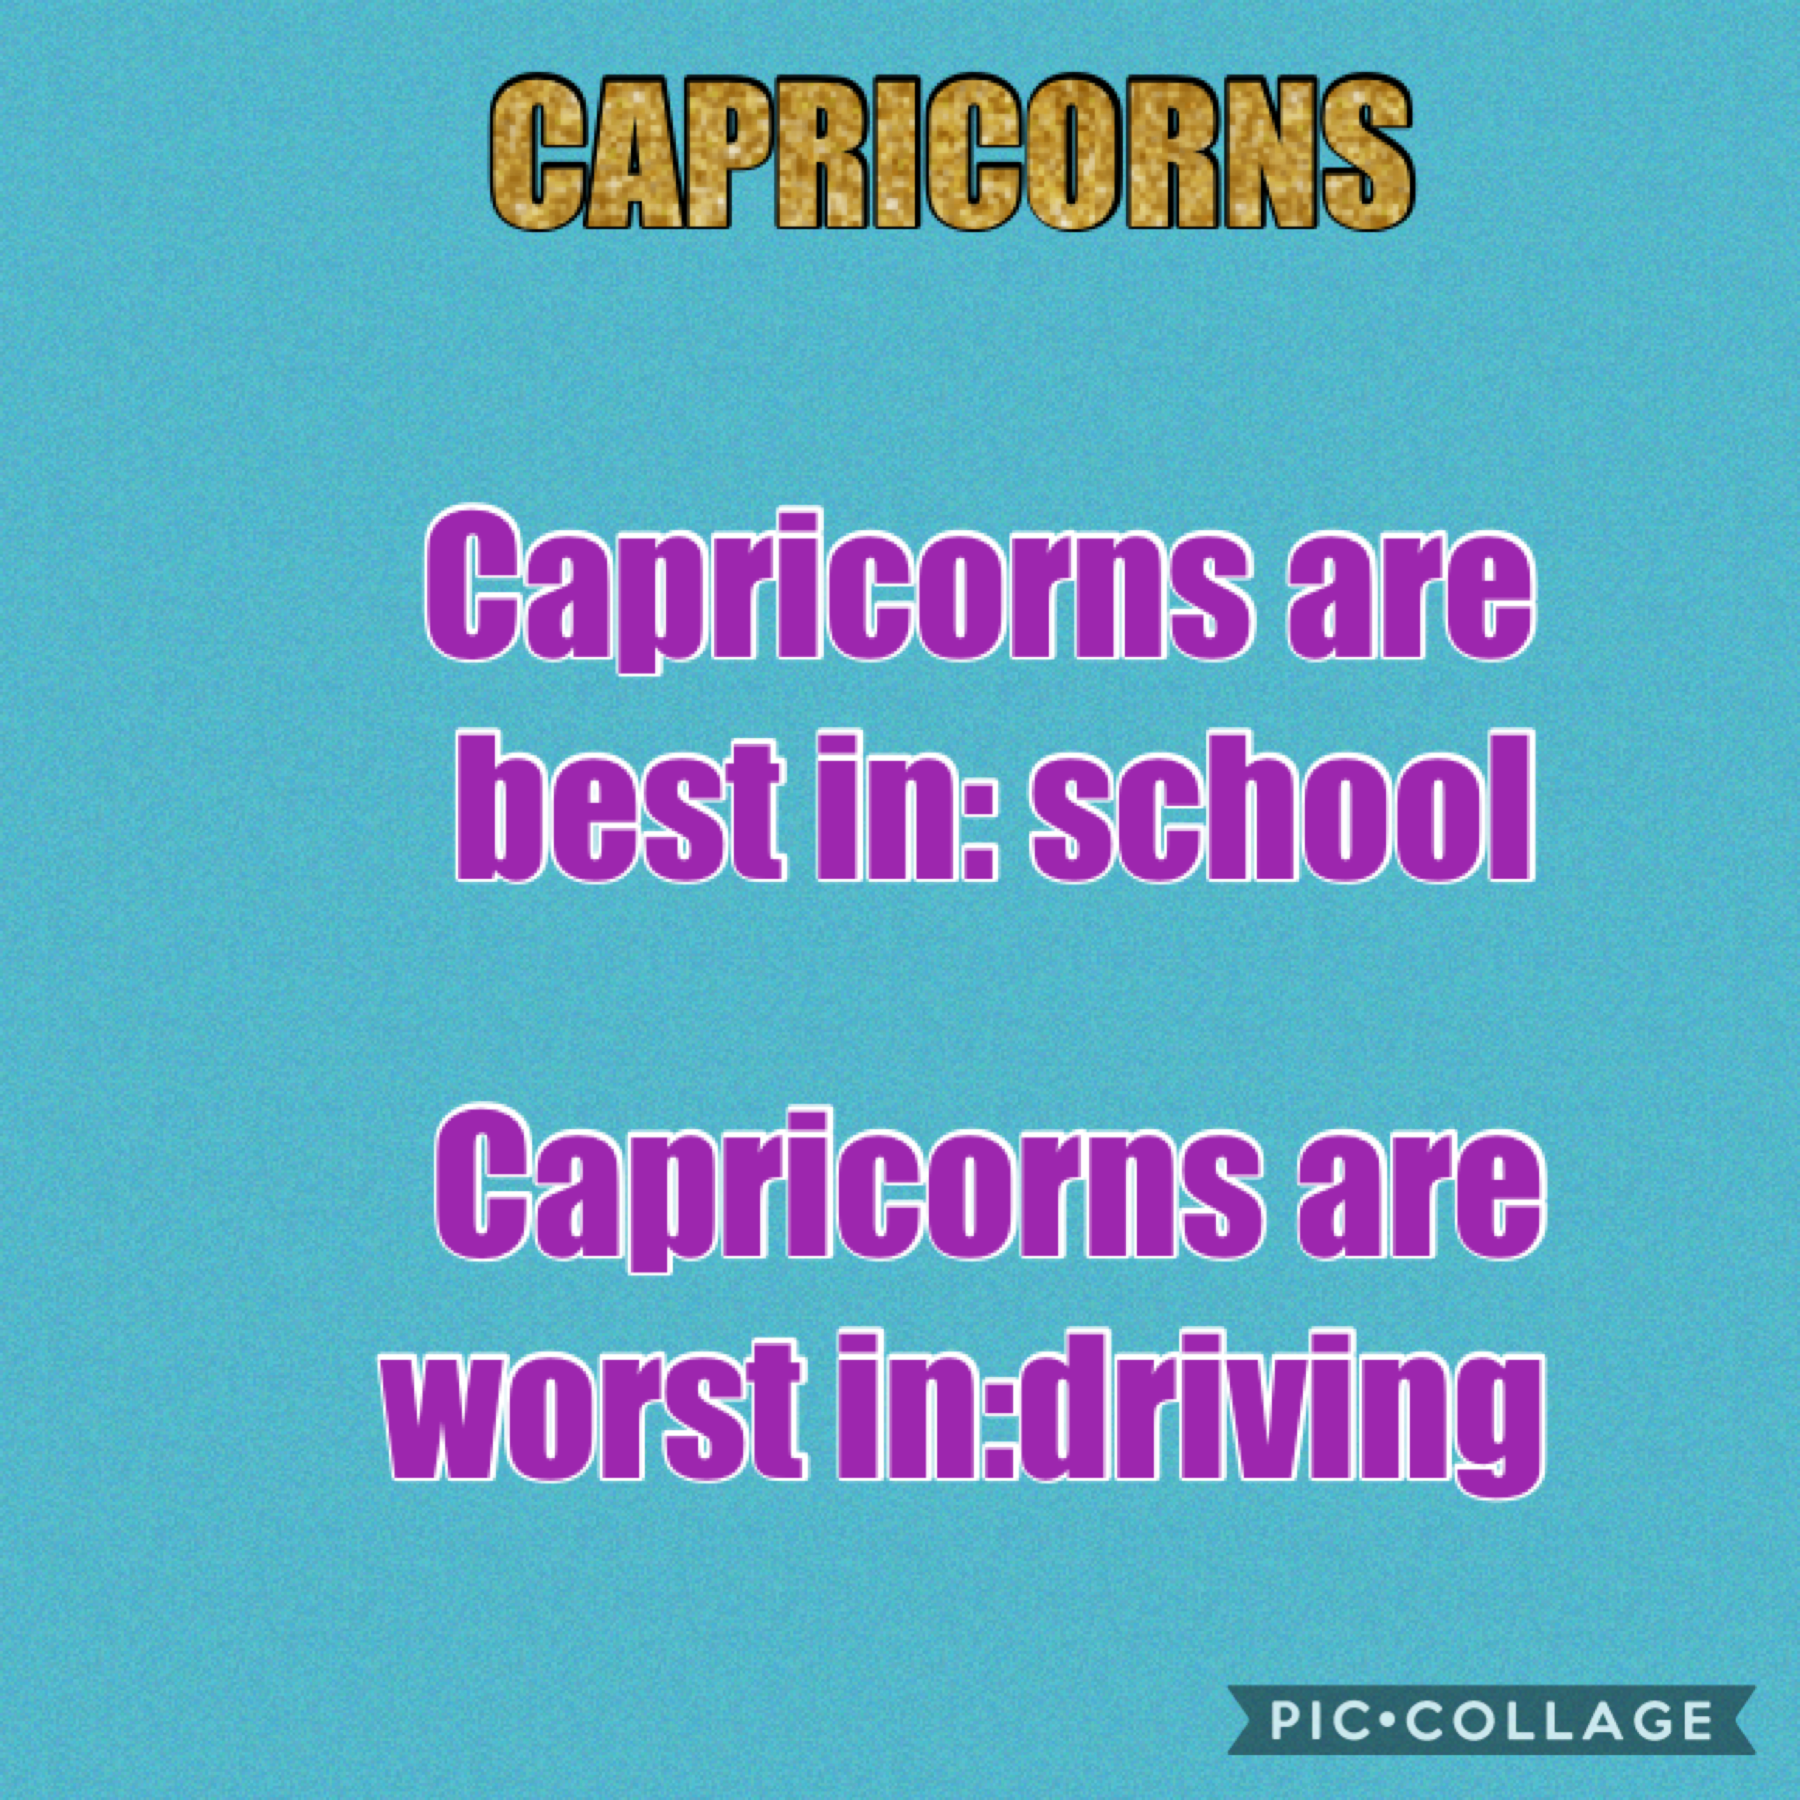 I am a Capricorn and I want to tell you about capricorns